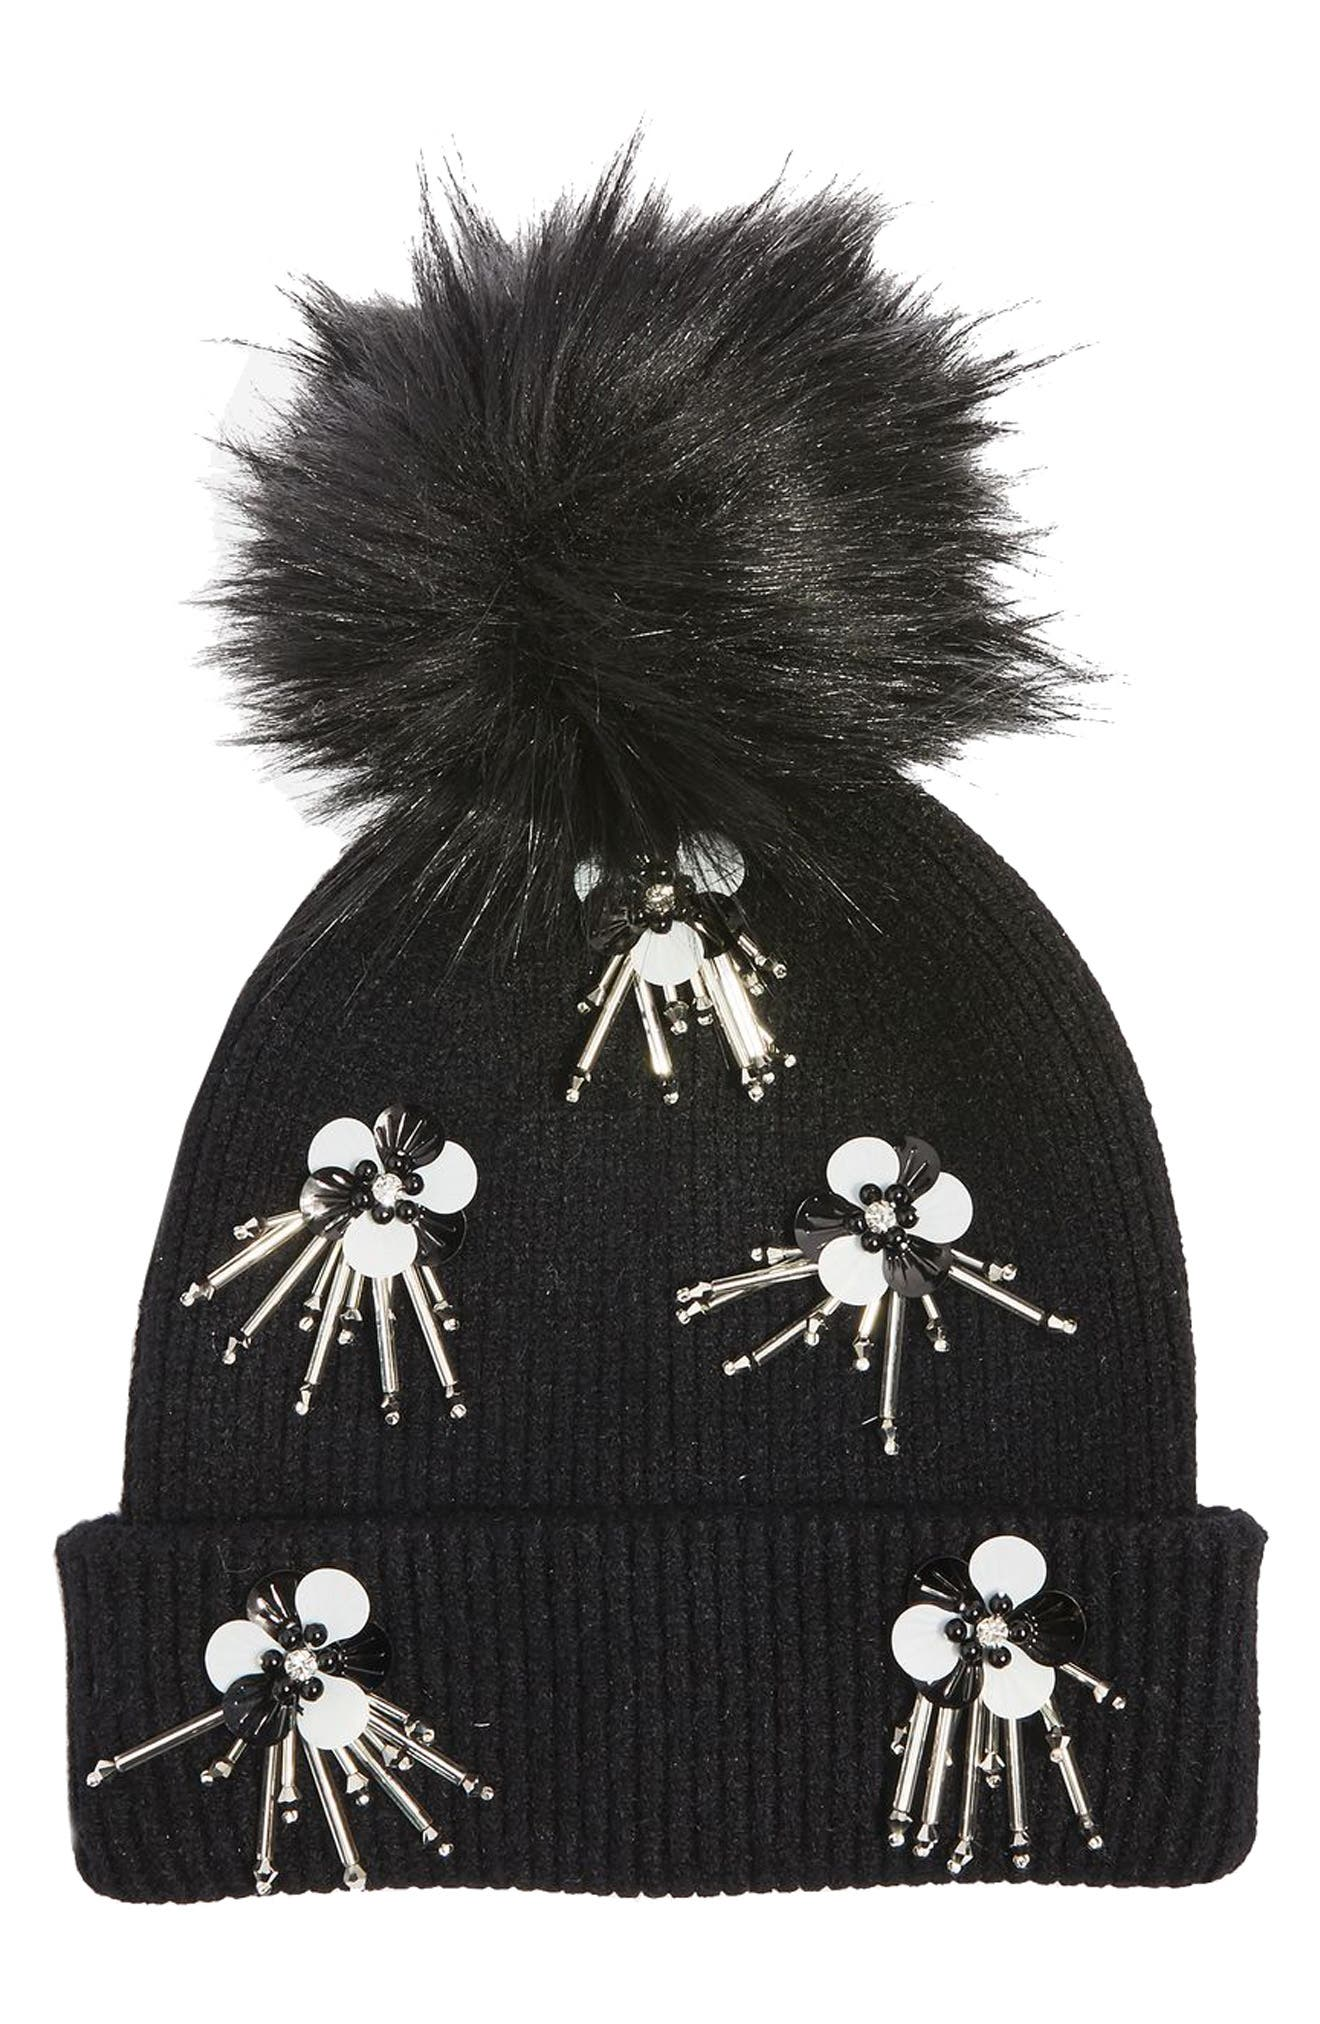 Alternate Image 1 Selected - Topshop Flower Burst Embellished Beanie